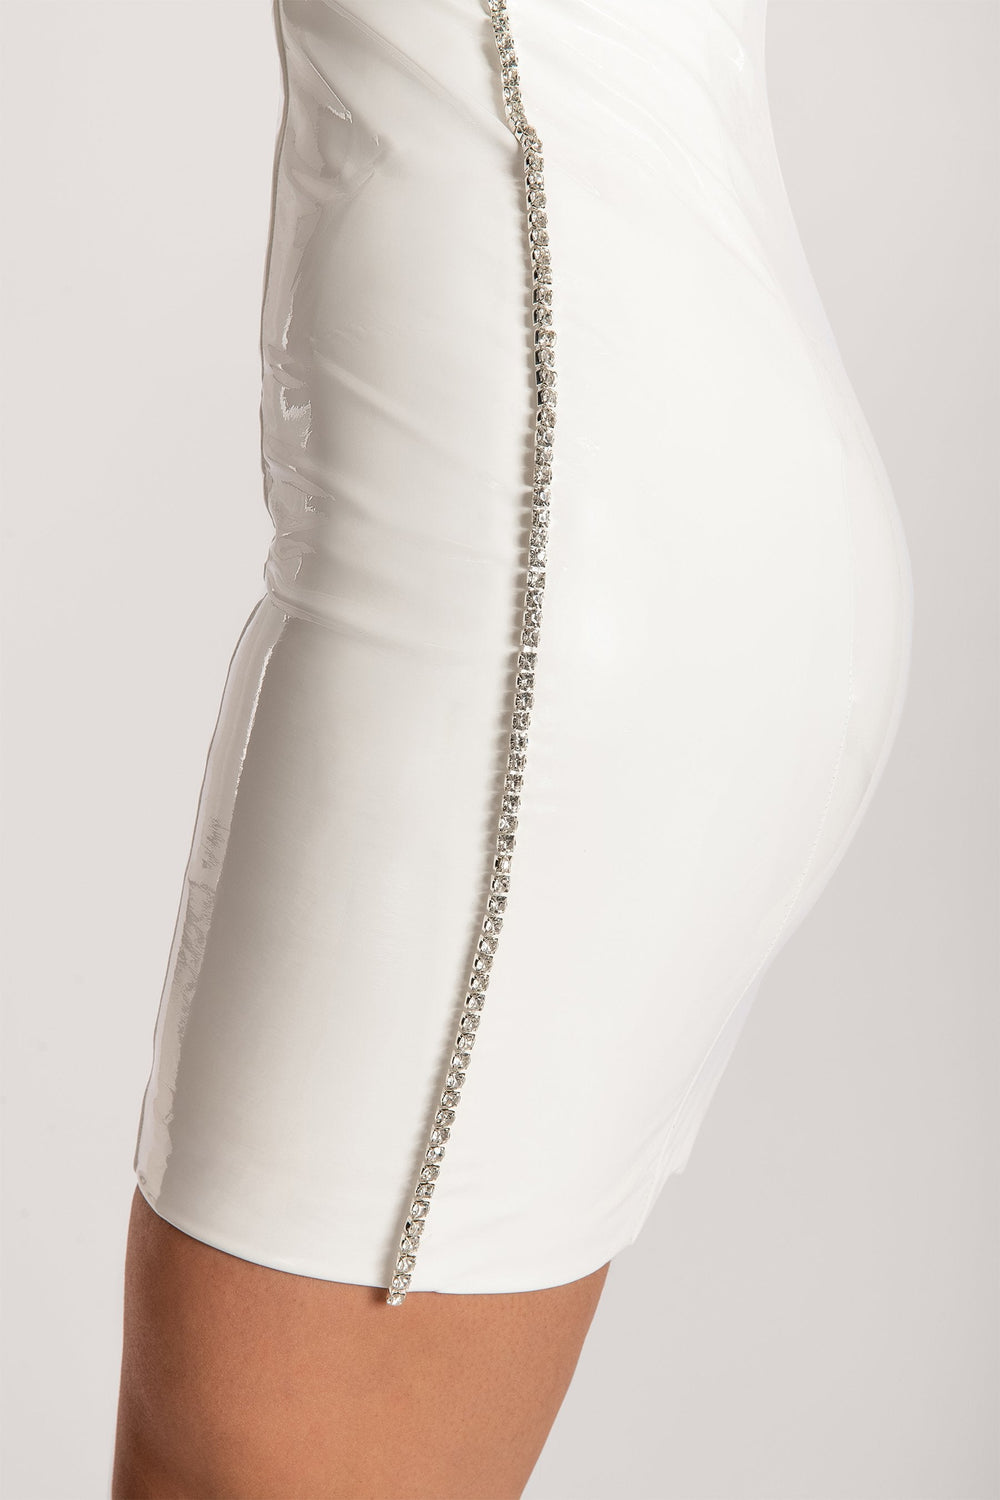 Liza Diamante Side Trim Latex Strapless Dress - White - MESHKI ?id=16030653677643